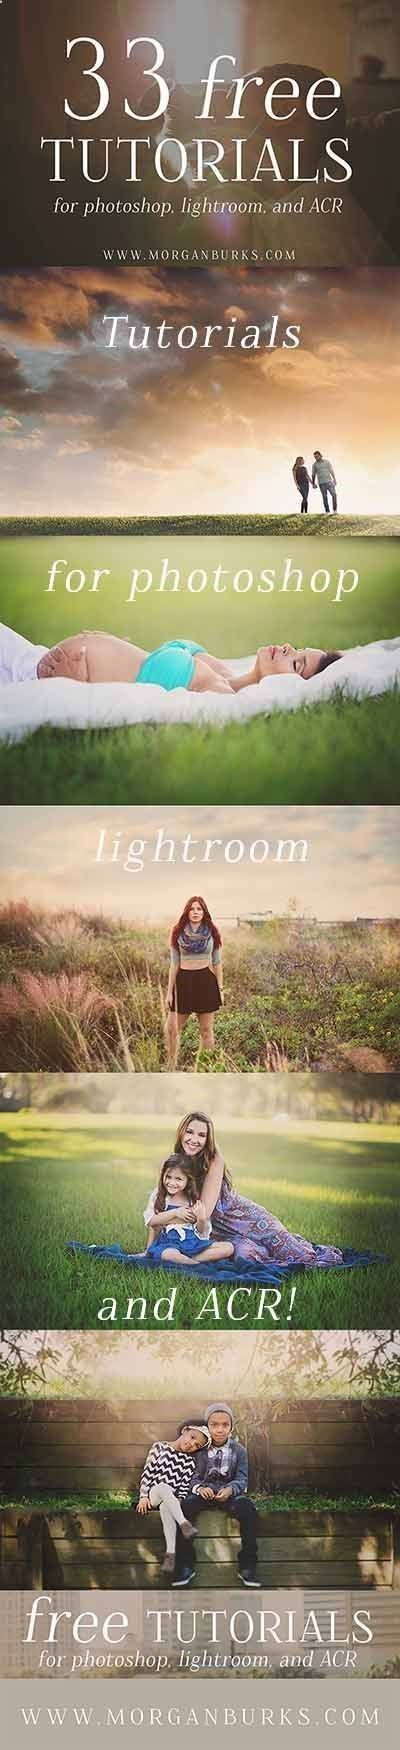 Better Pictures - 33 Free Tutorials for Photoshop, Lightroom and ACR! | Photography Tips To anybody wanting to take better photographs today